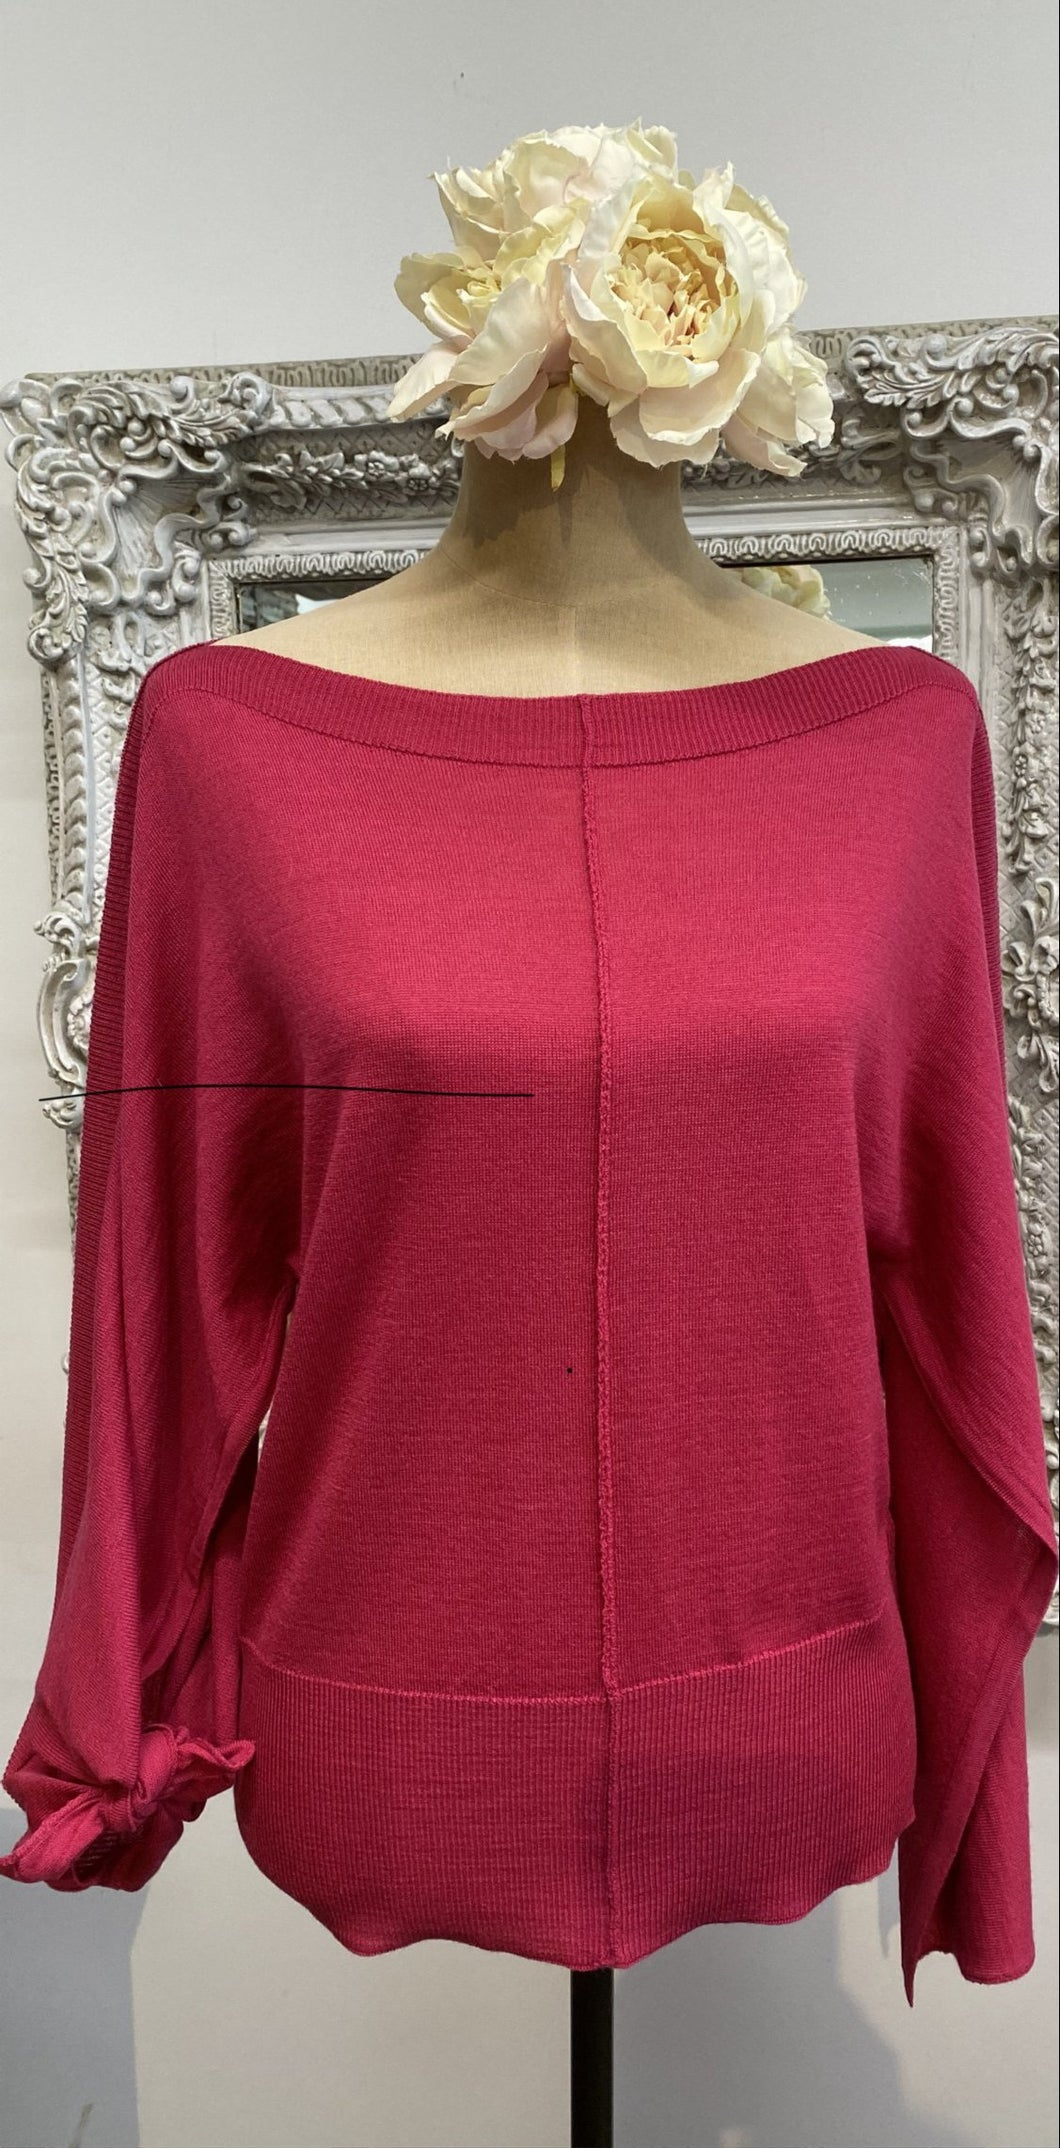 Red Italian knit top